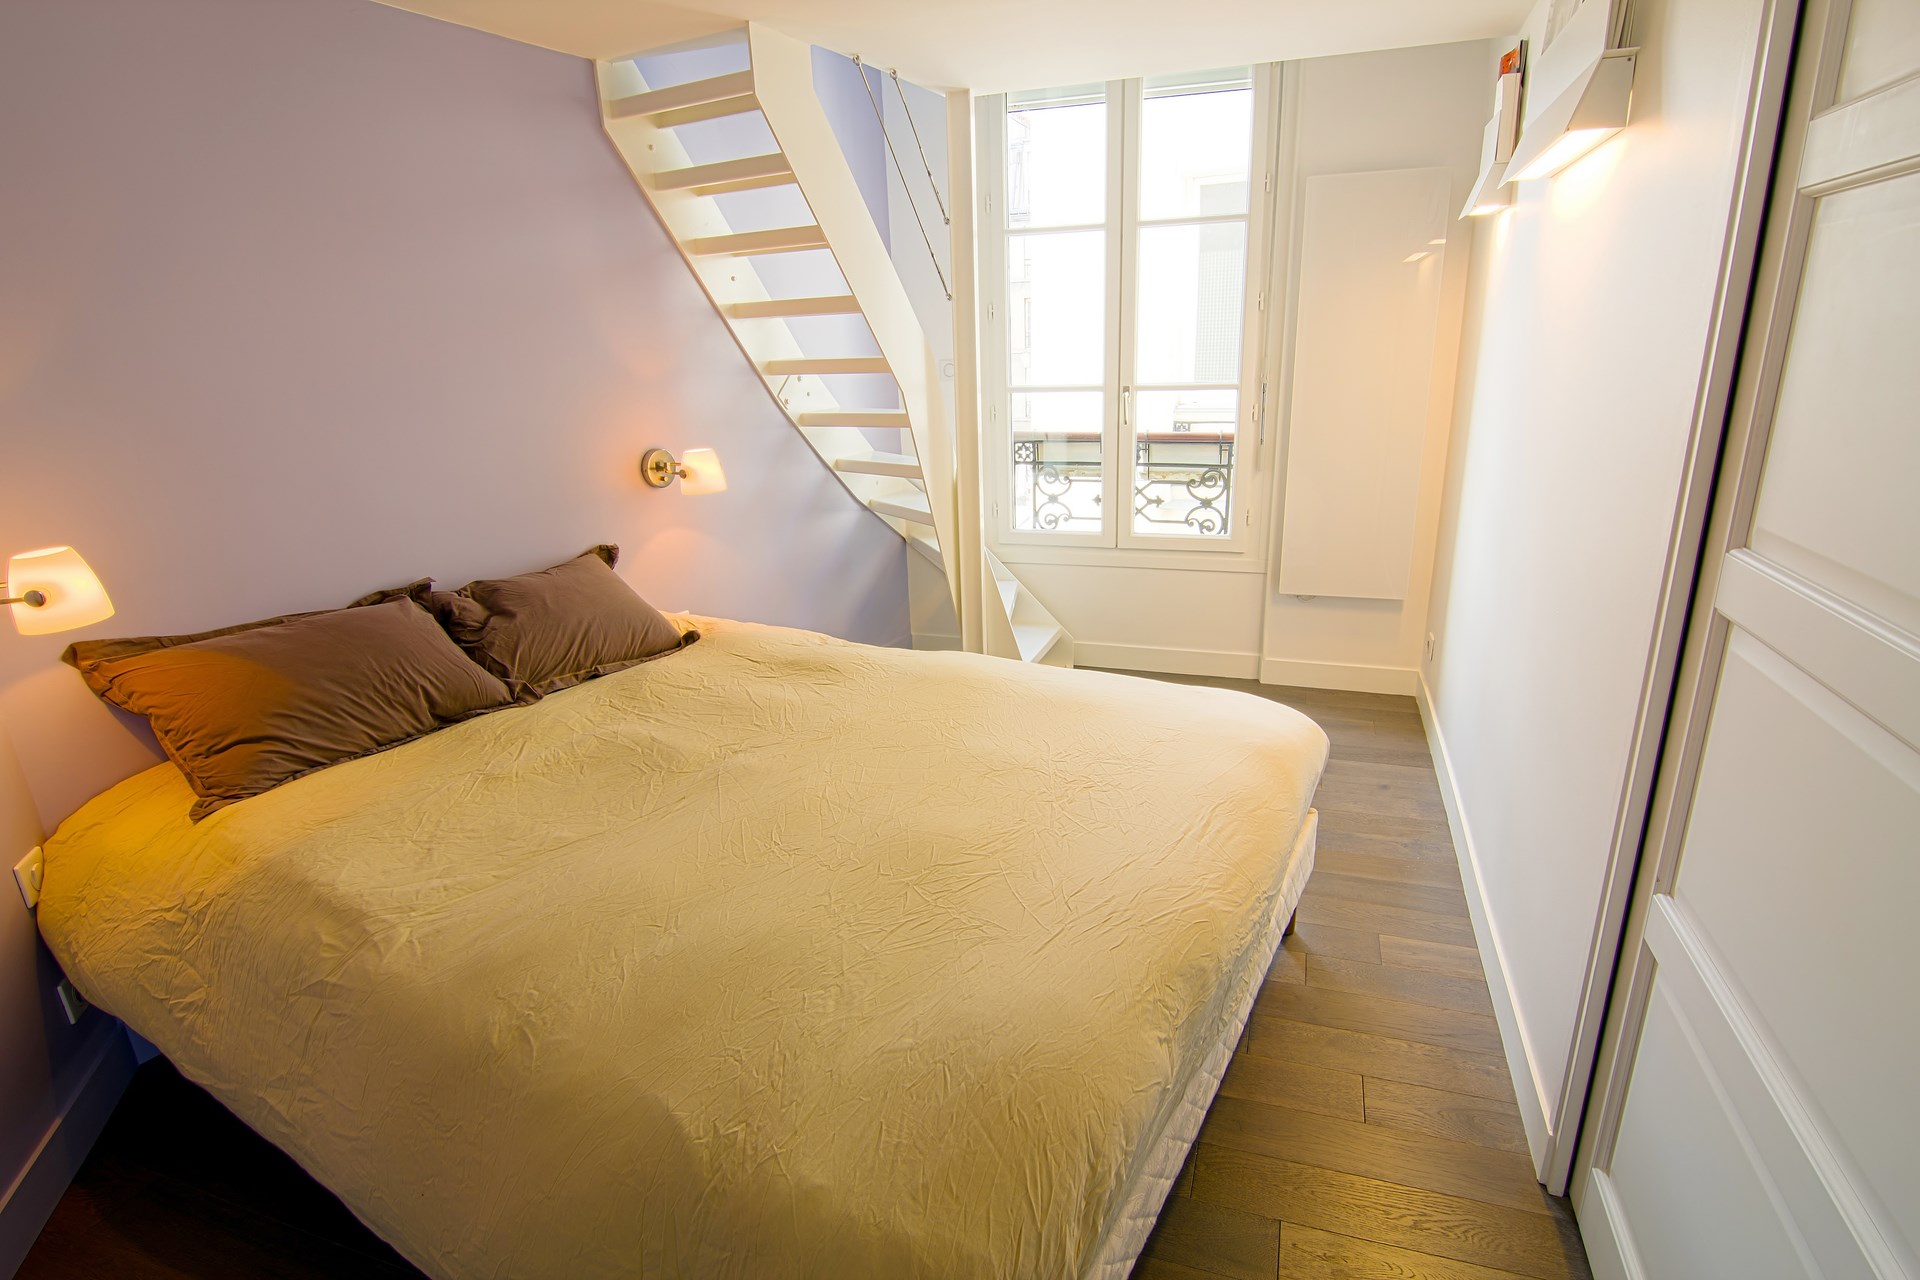 Am nagement appartement sous combles baign de lumi re paris - Amenagement chambre mezzanine ...